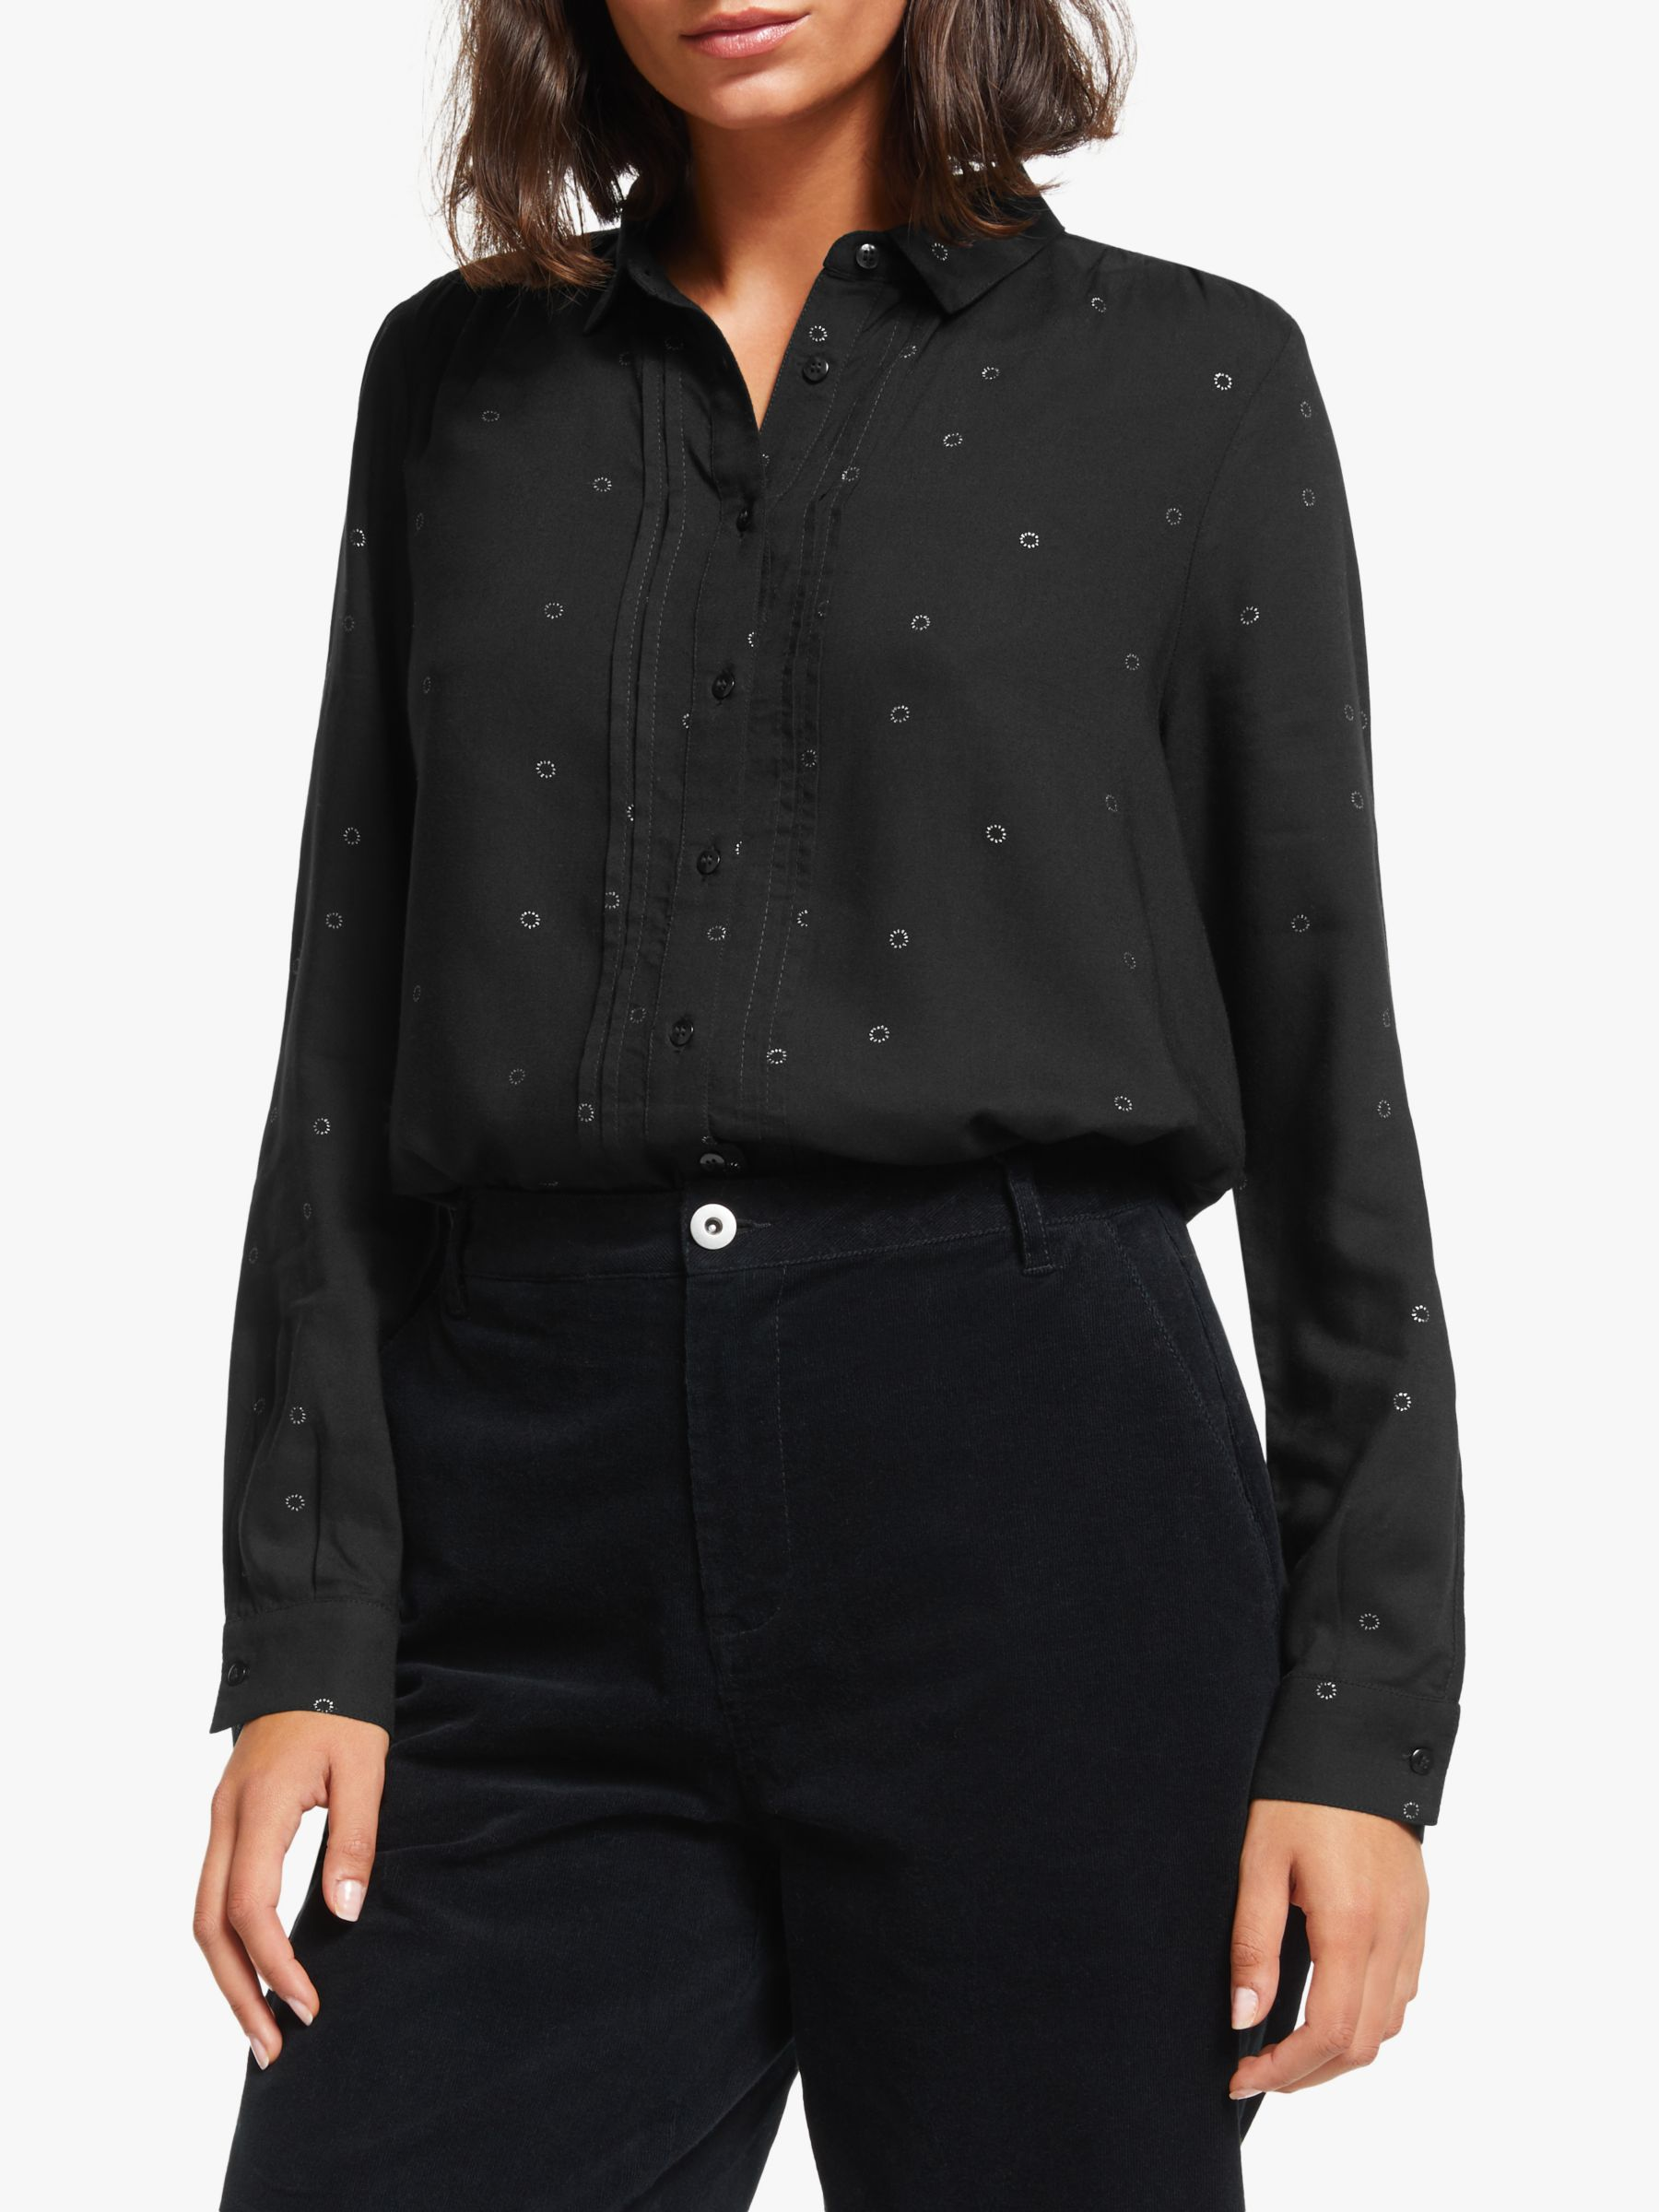 Collection WEEKEND by John Lewis Collection WEEKEND by John Lewis Foil Boyfriend Shirt, Silver/Black